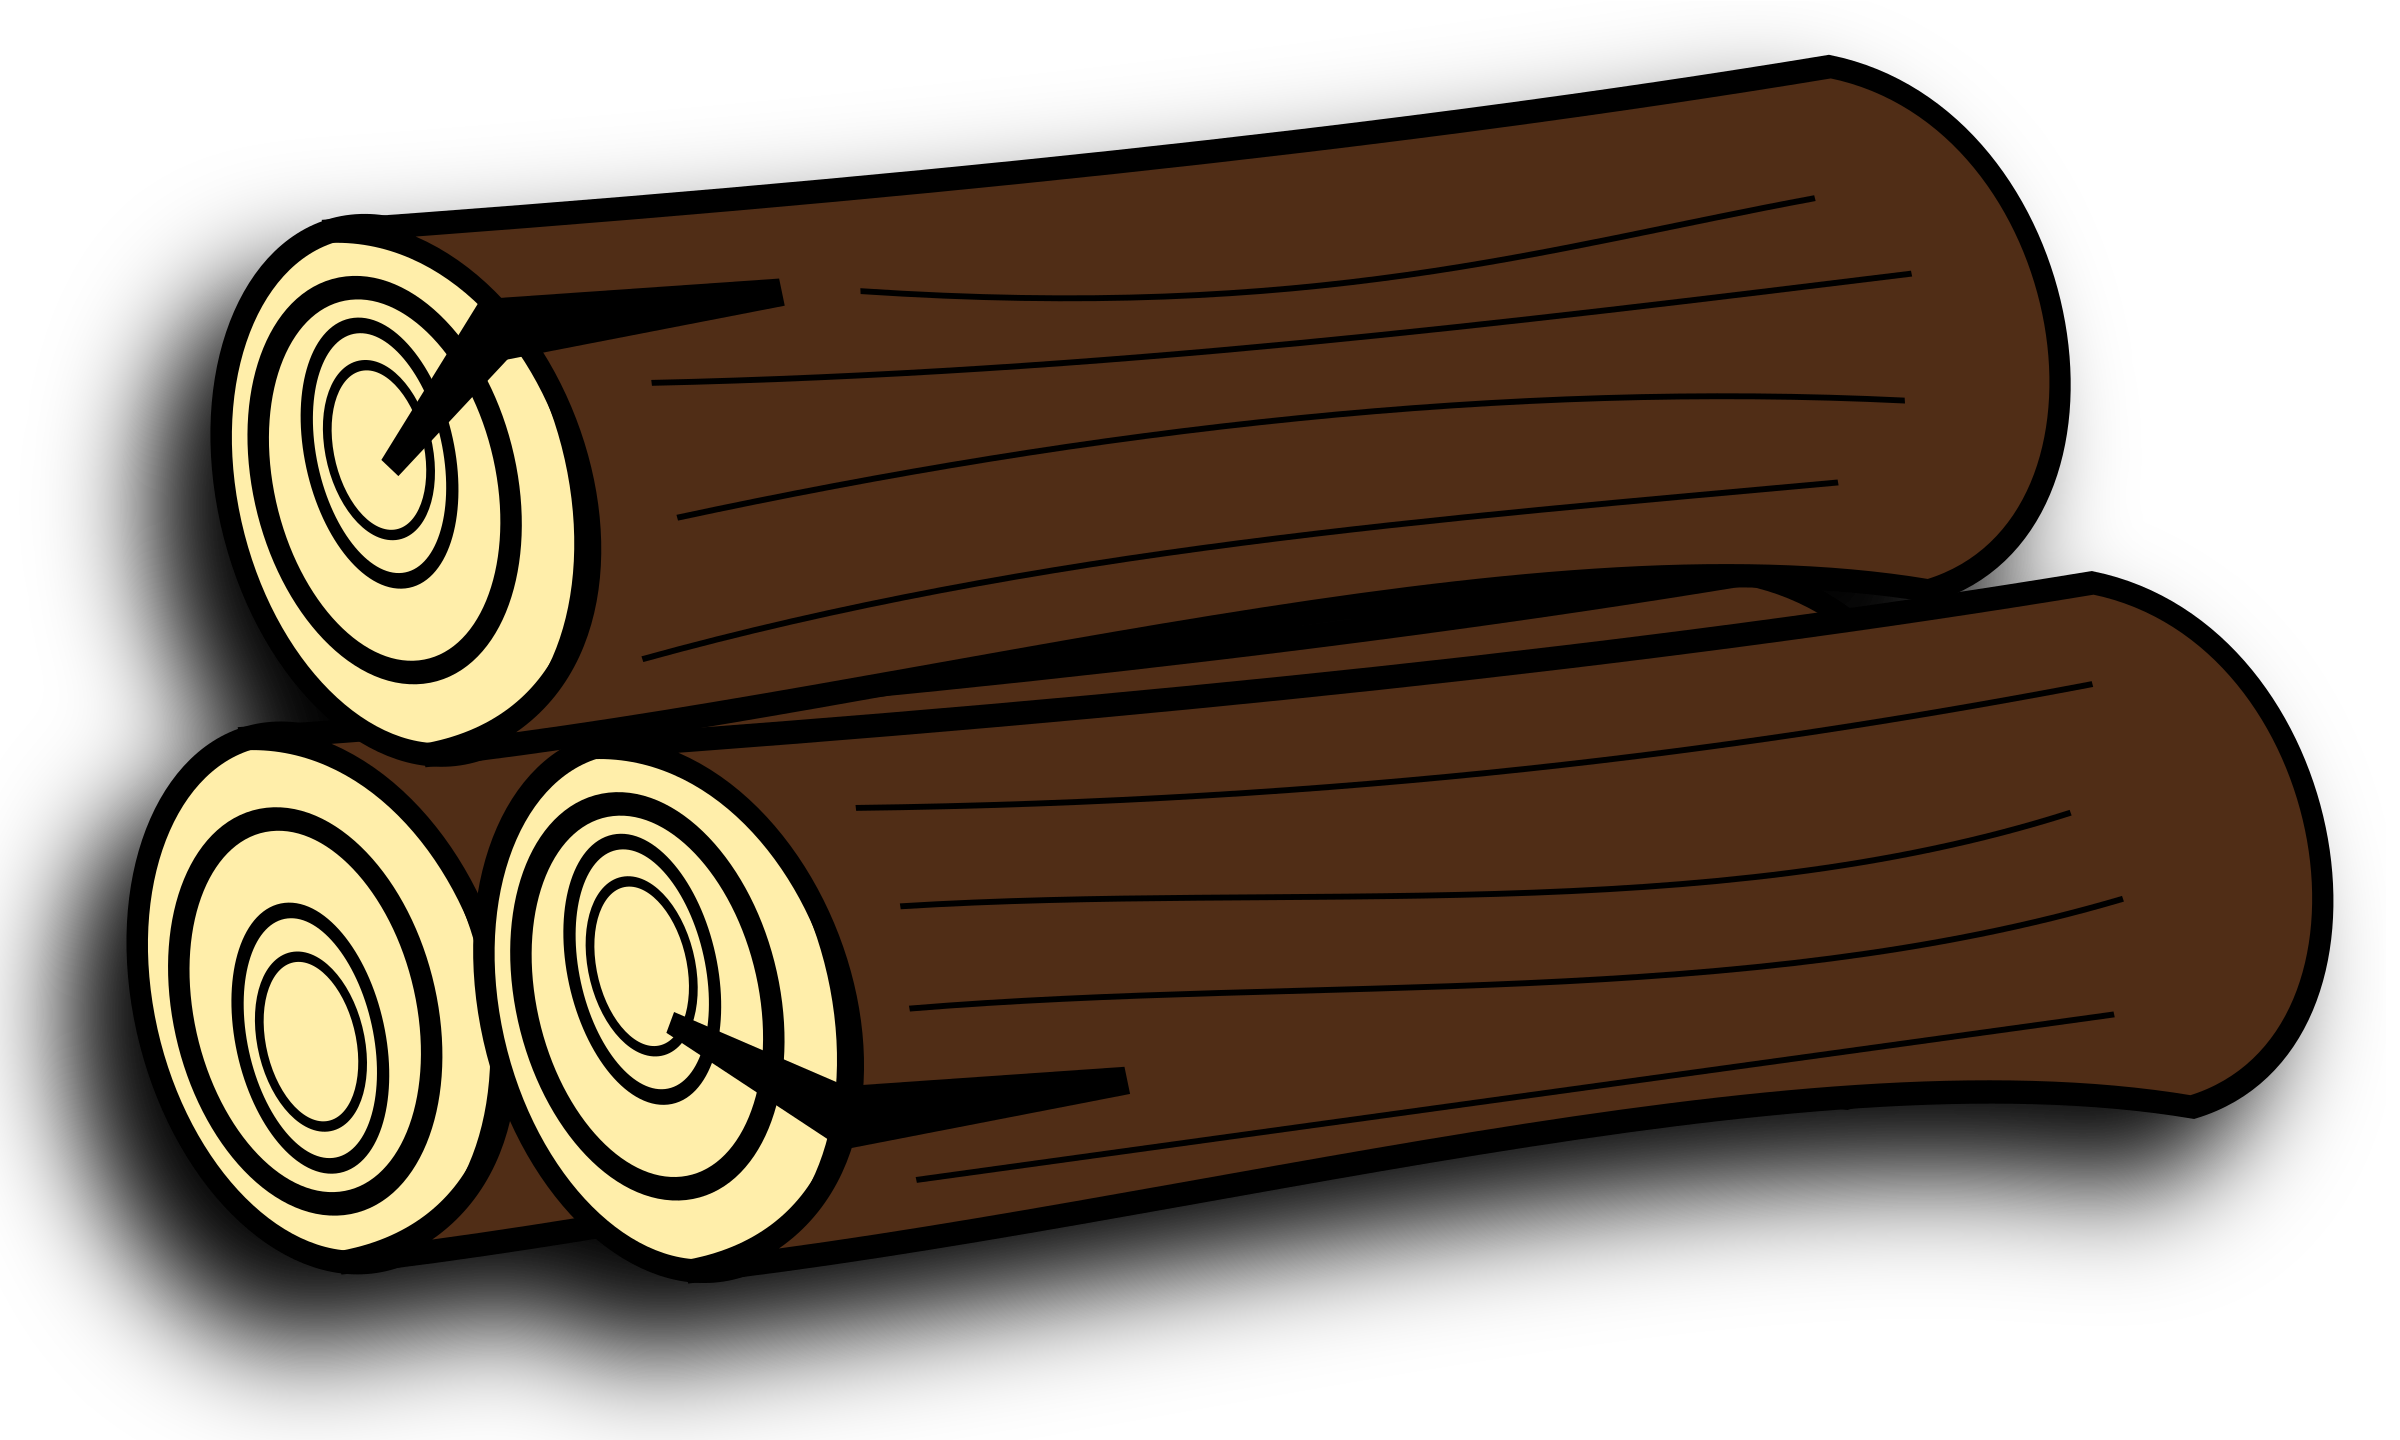 Wood icon png. Icons free and downloads